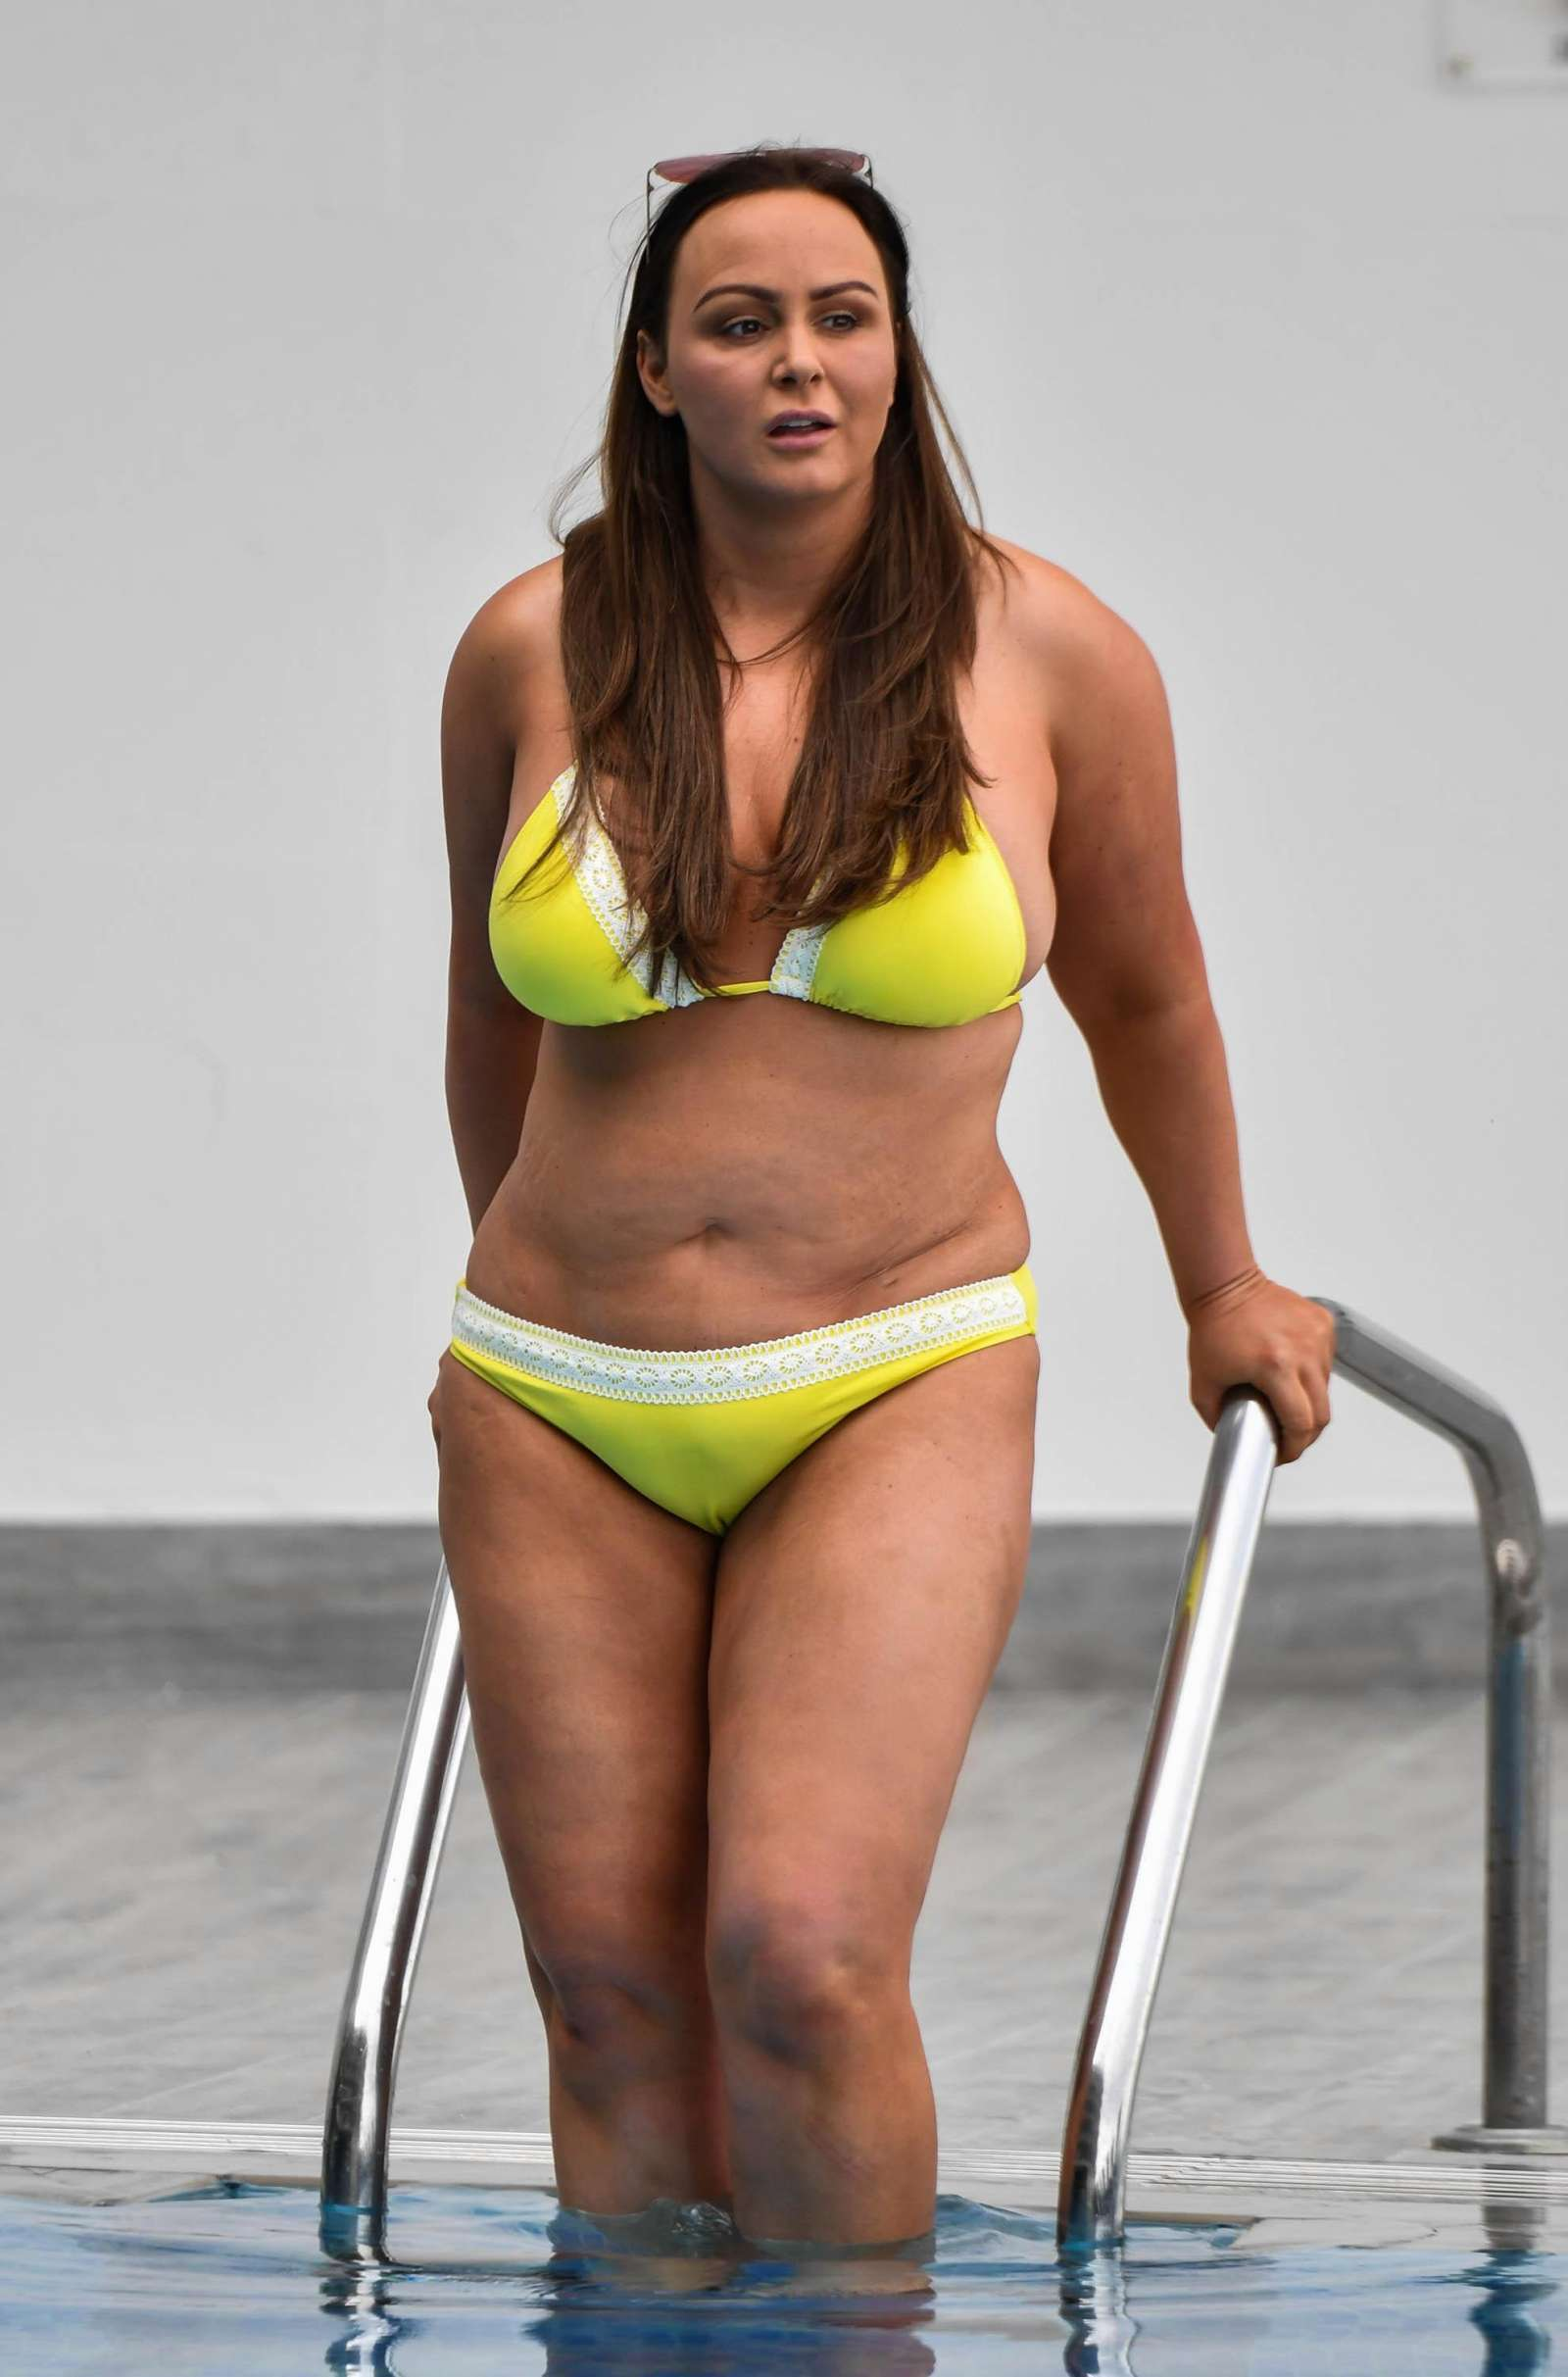 Images Chanelle Hayes naked (62 foto and video), Pussy, Paparazzi, Selfie, in bikini 2015